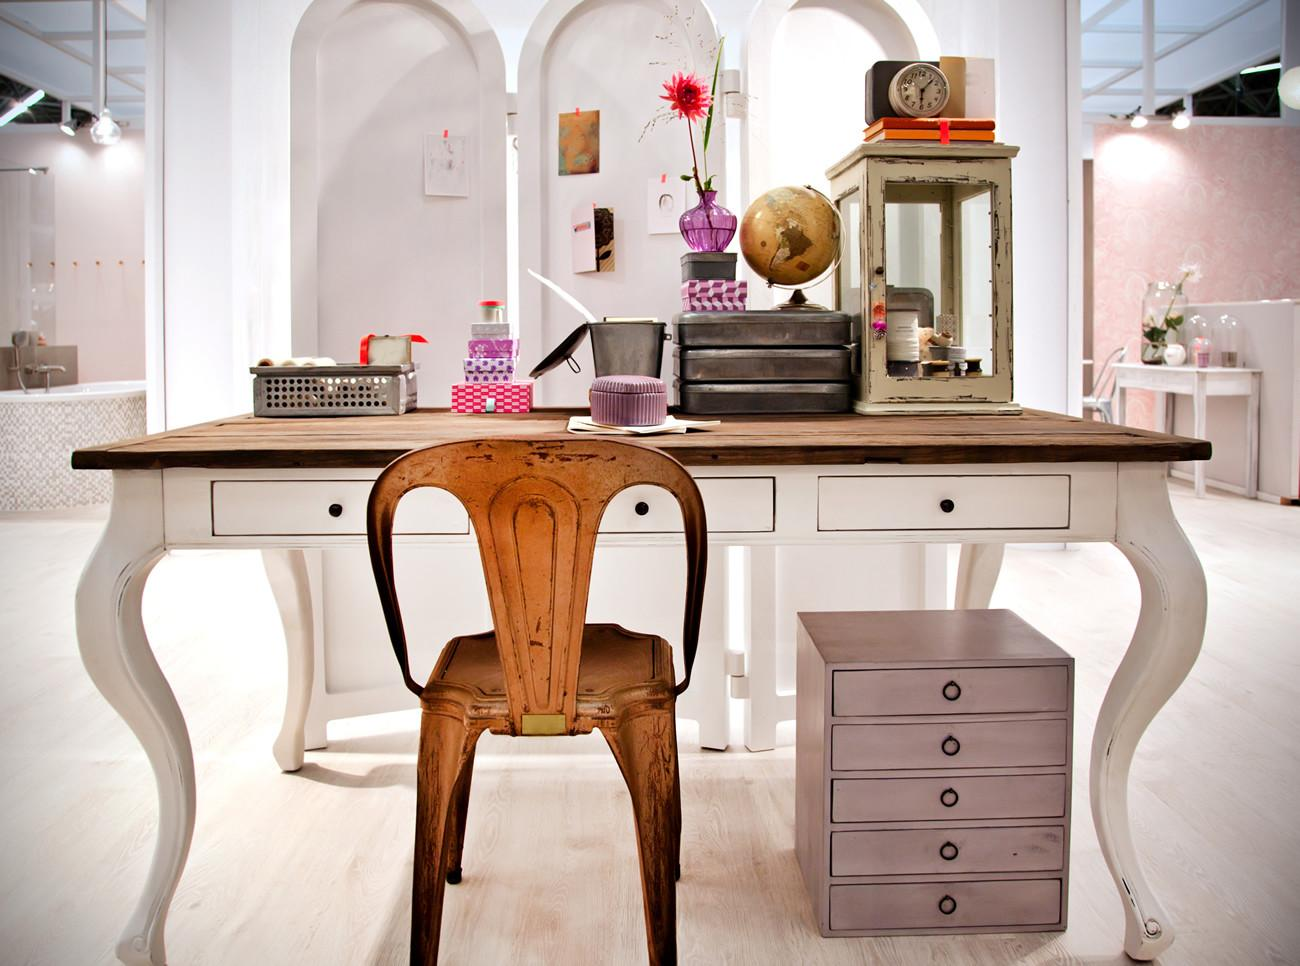 Eclectic Design Styles